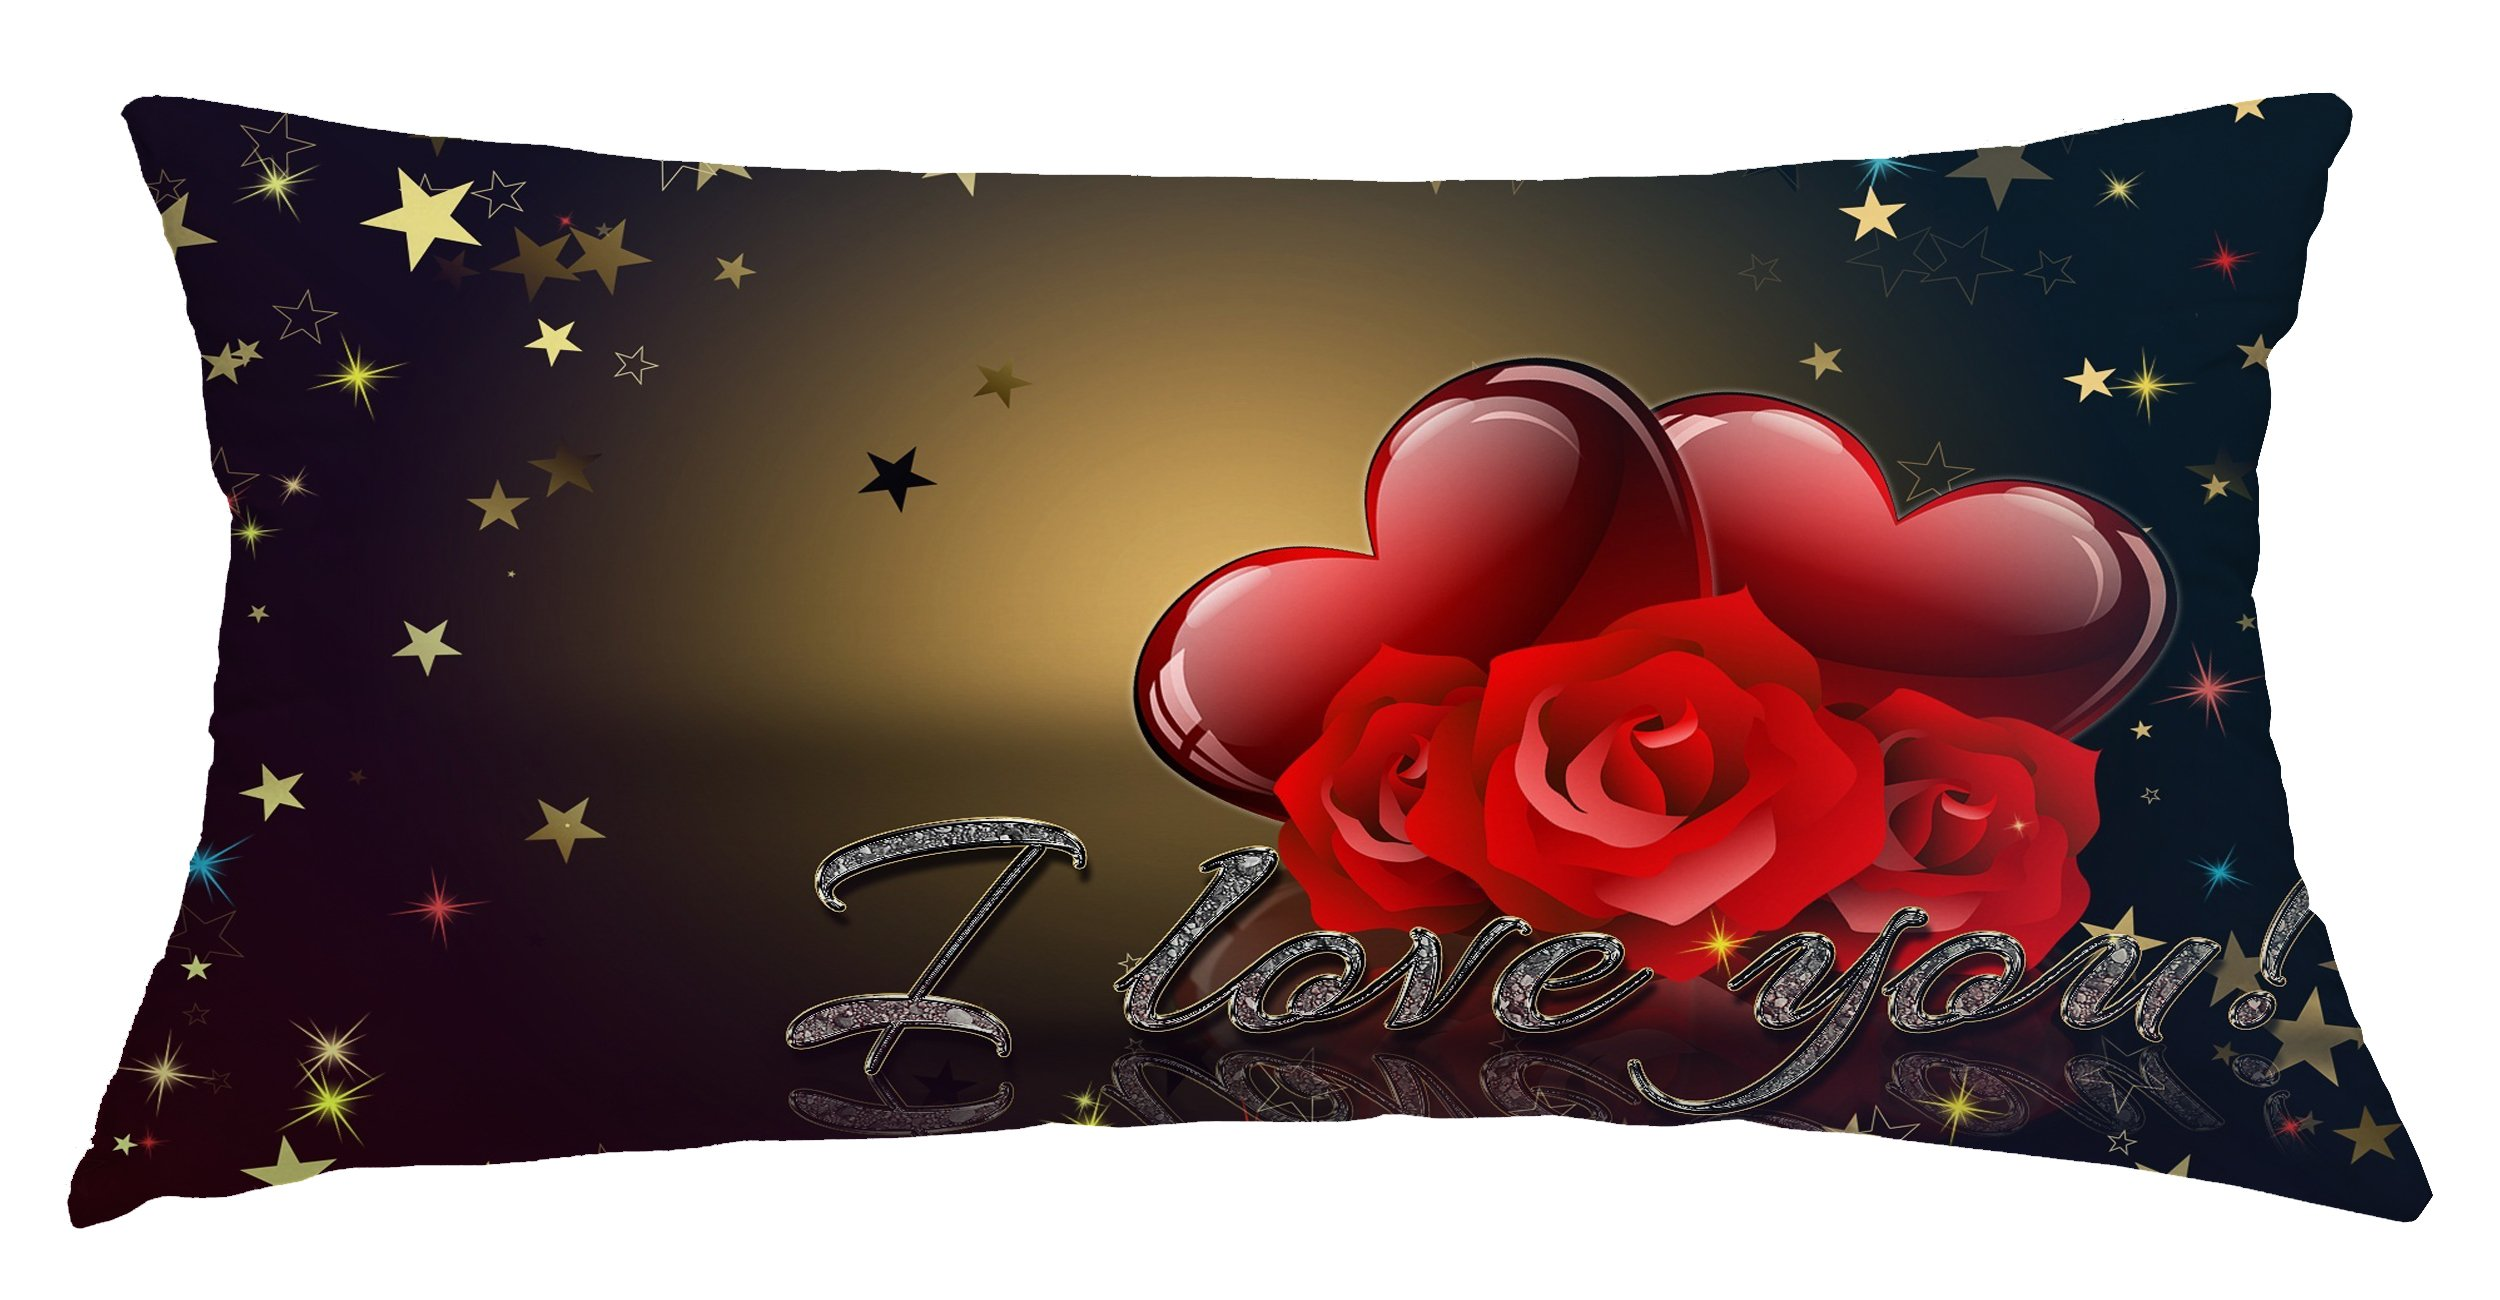 Romantic Love Roses I LOVE YOU Customized Home Decoration Polyester Rectangle Pillow Cover Case 16 x 32 Inch